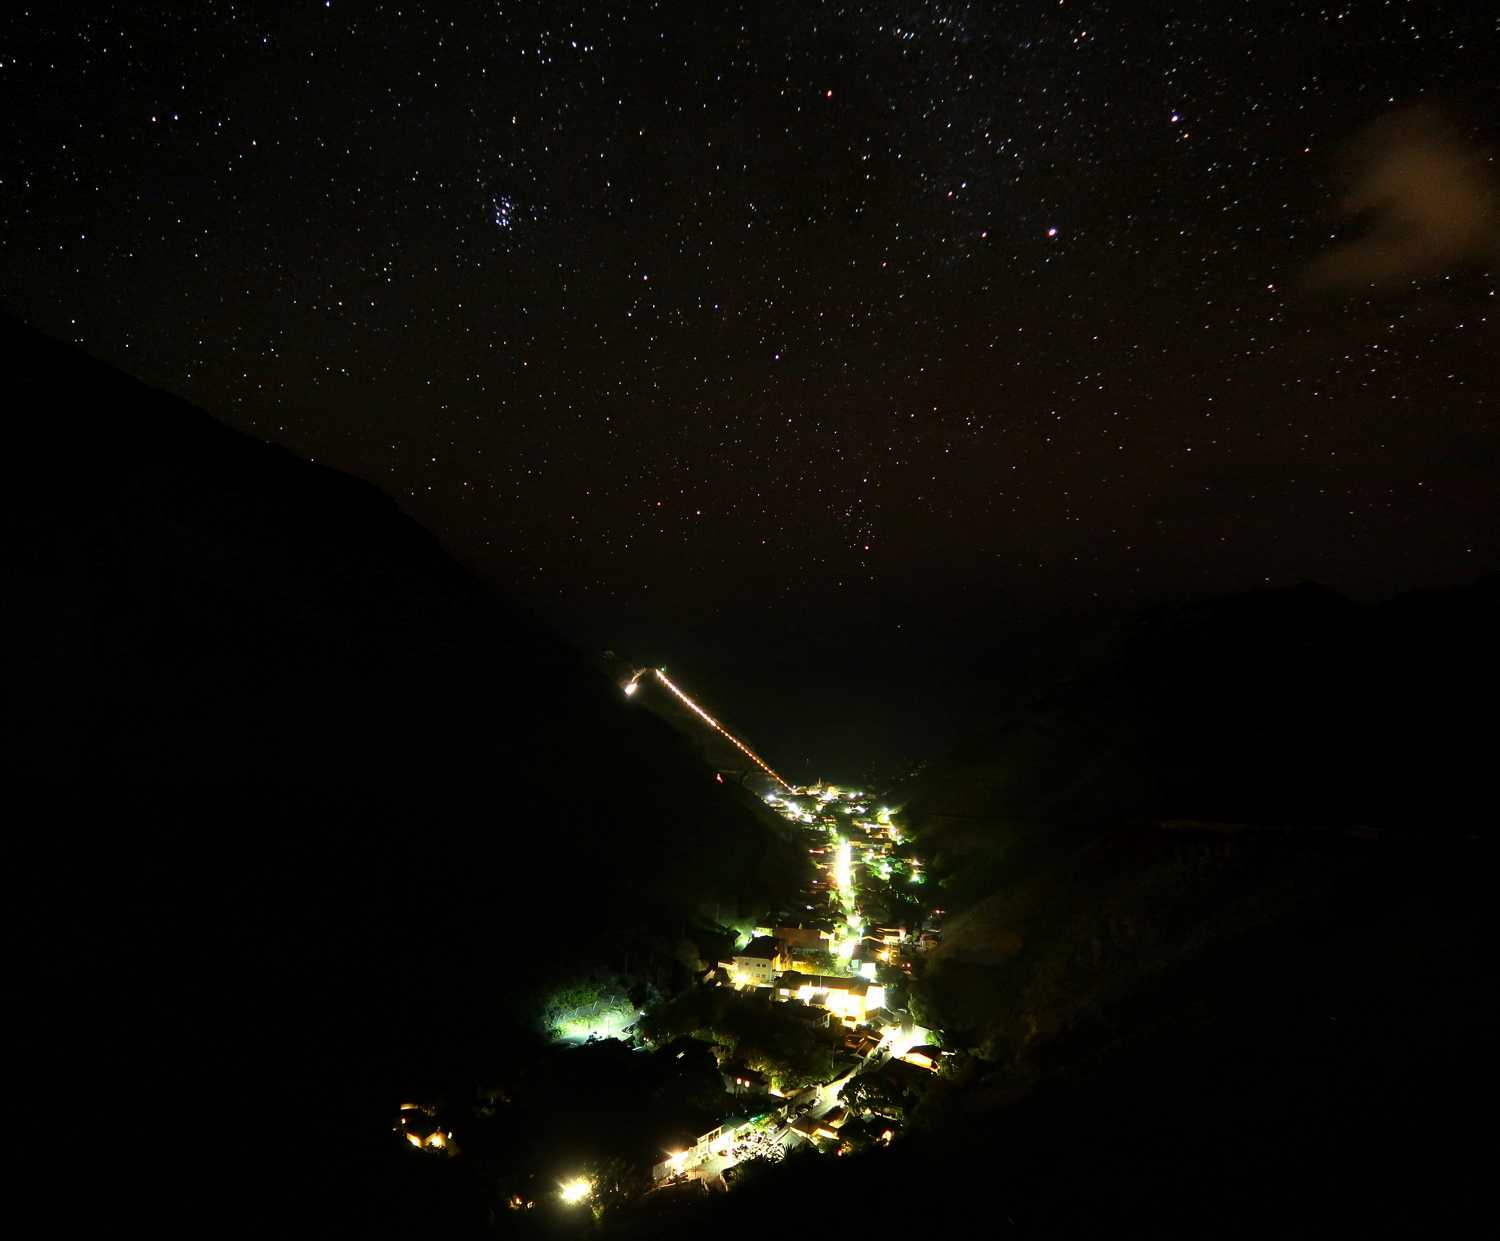 Jamestown at night with stars, clearly showing the Ladder illuminated